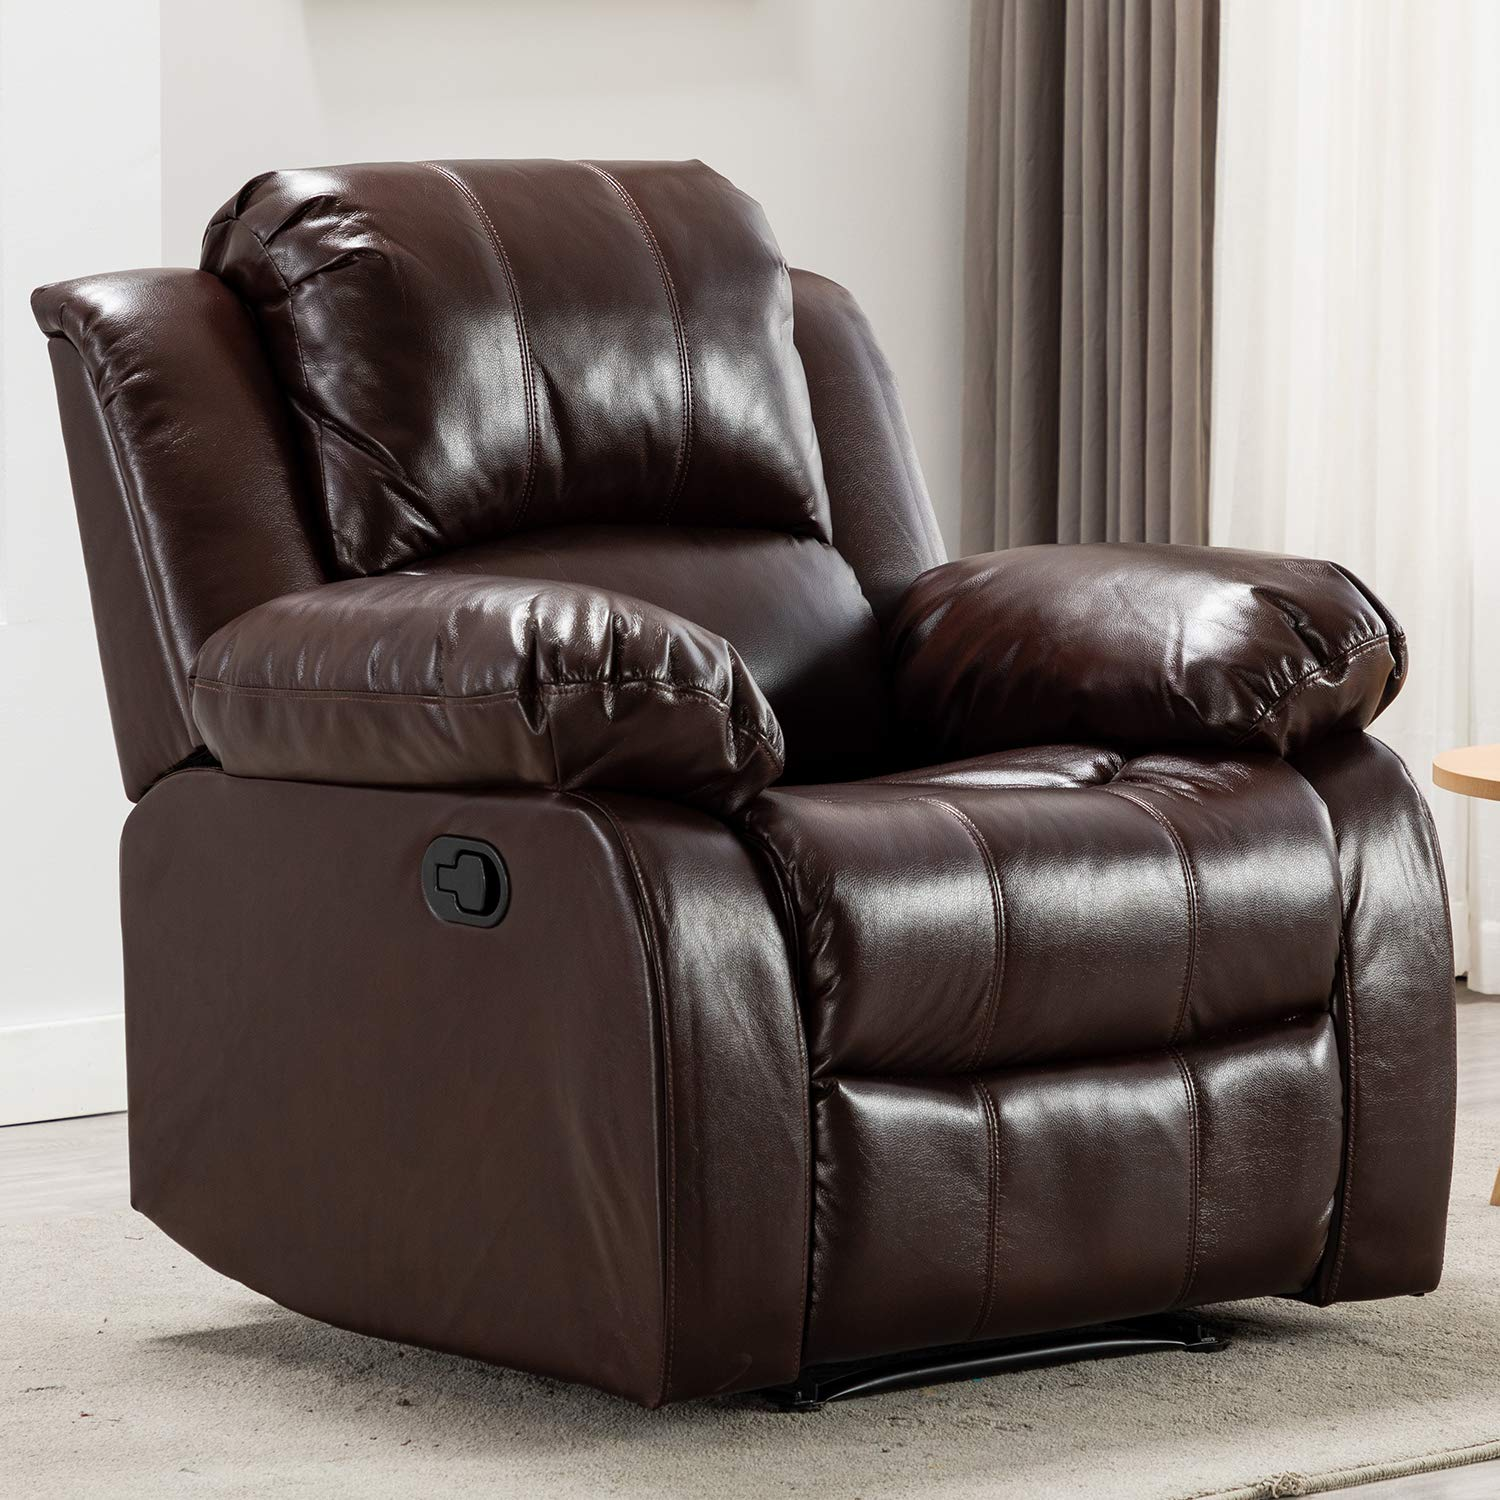 Bonzy Home Air Leather Recliner Overstuffed Heavy Duty Manual Faux Leather Recliner Chair - Home Theater Seating - Bedroom & Living Room Chair Recliner Sofa (Red Brown) by Bonzy Home